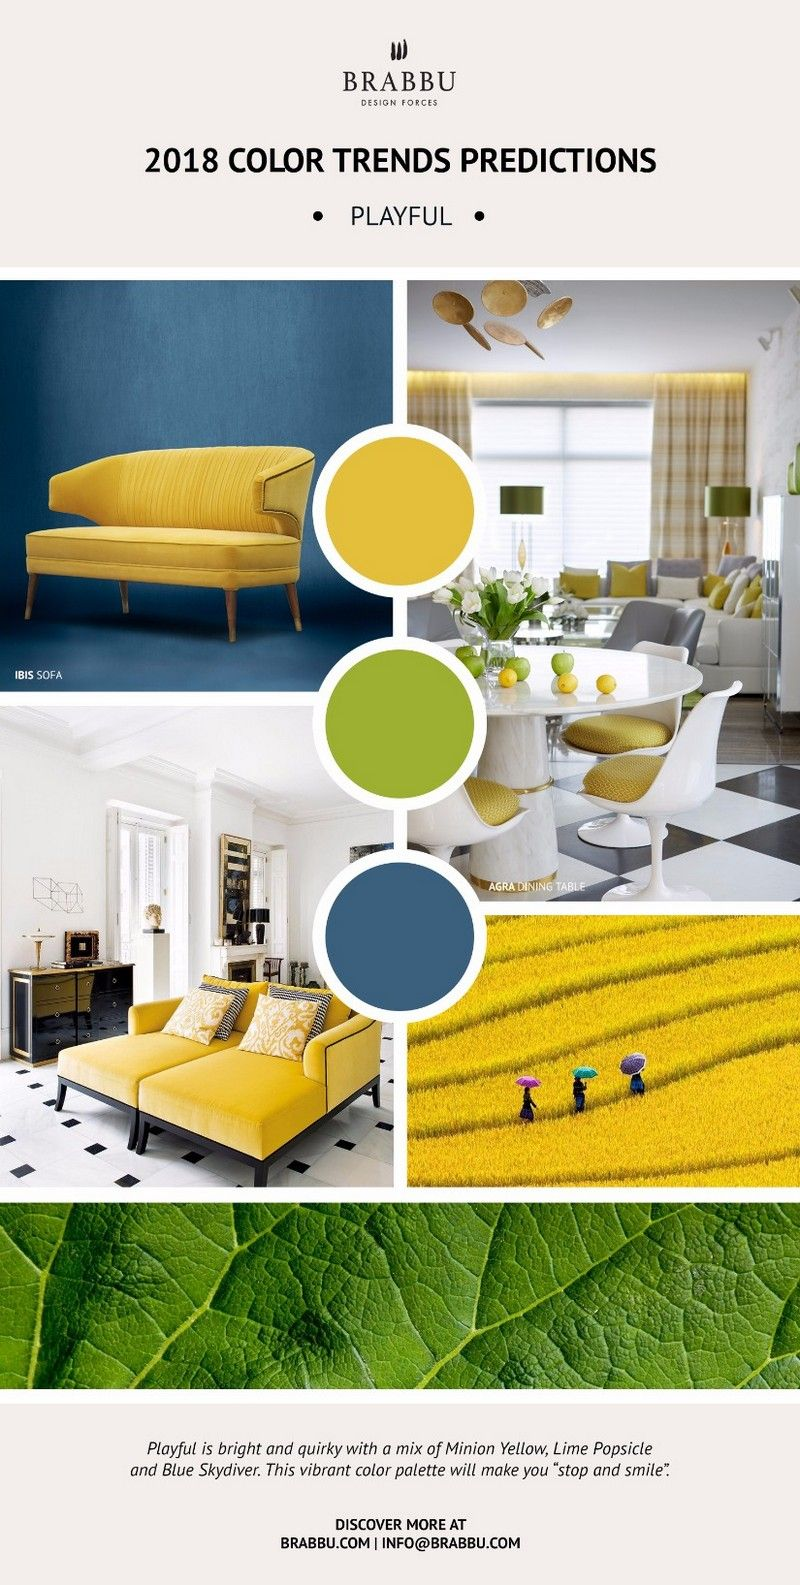 How To Decorate Your Home With Pantone 2018 Color Trends Predictions ...